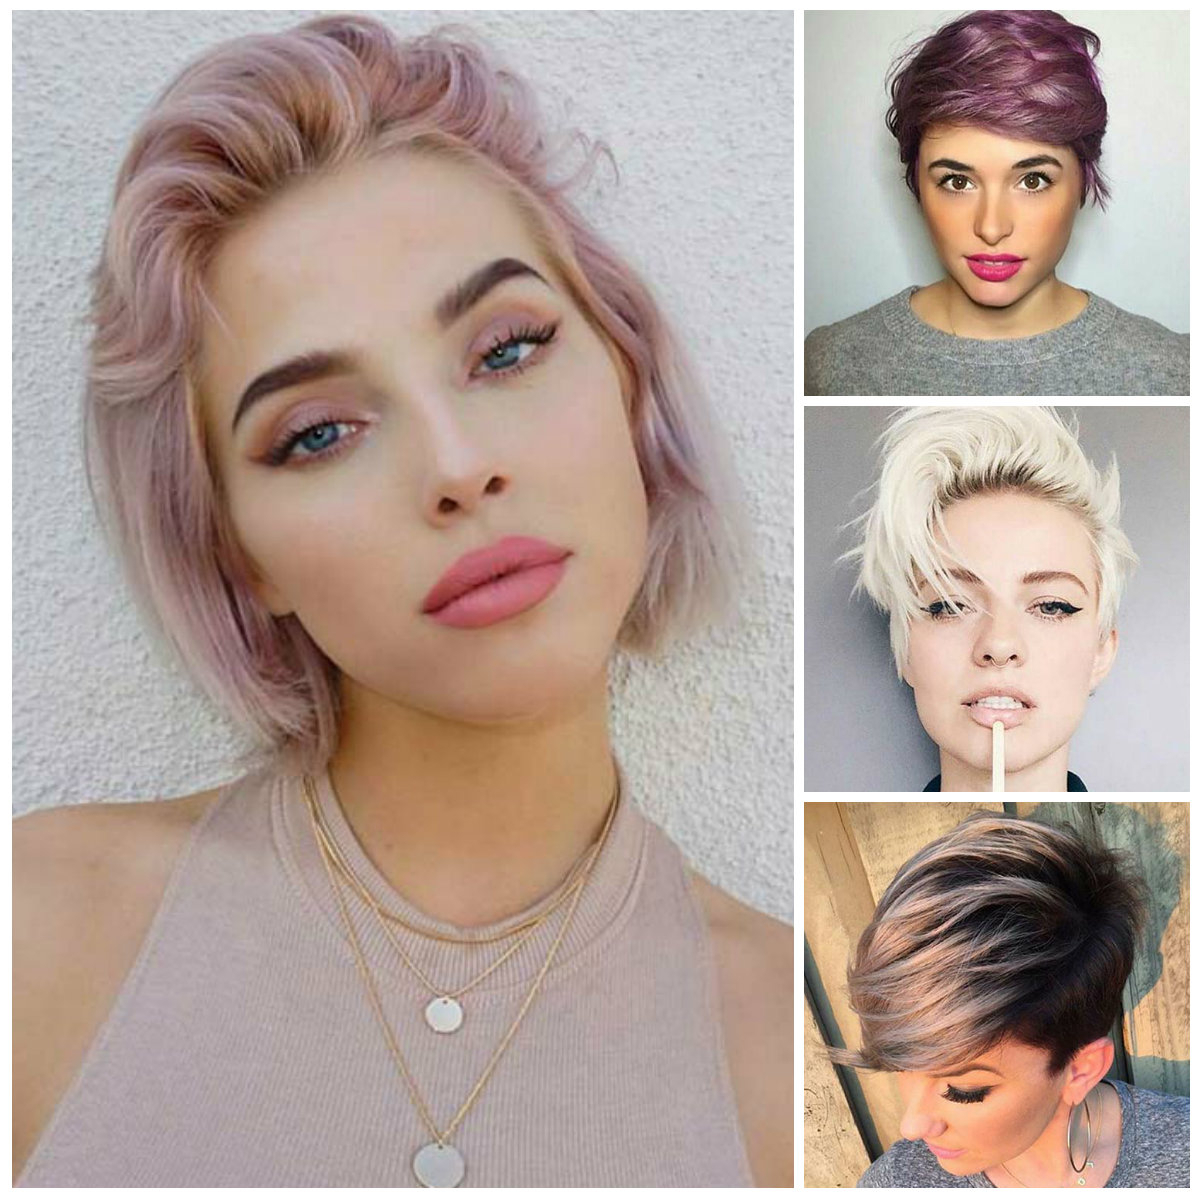 Women's Short Hairstyles For (View 19 of 20)